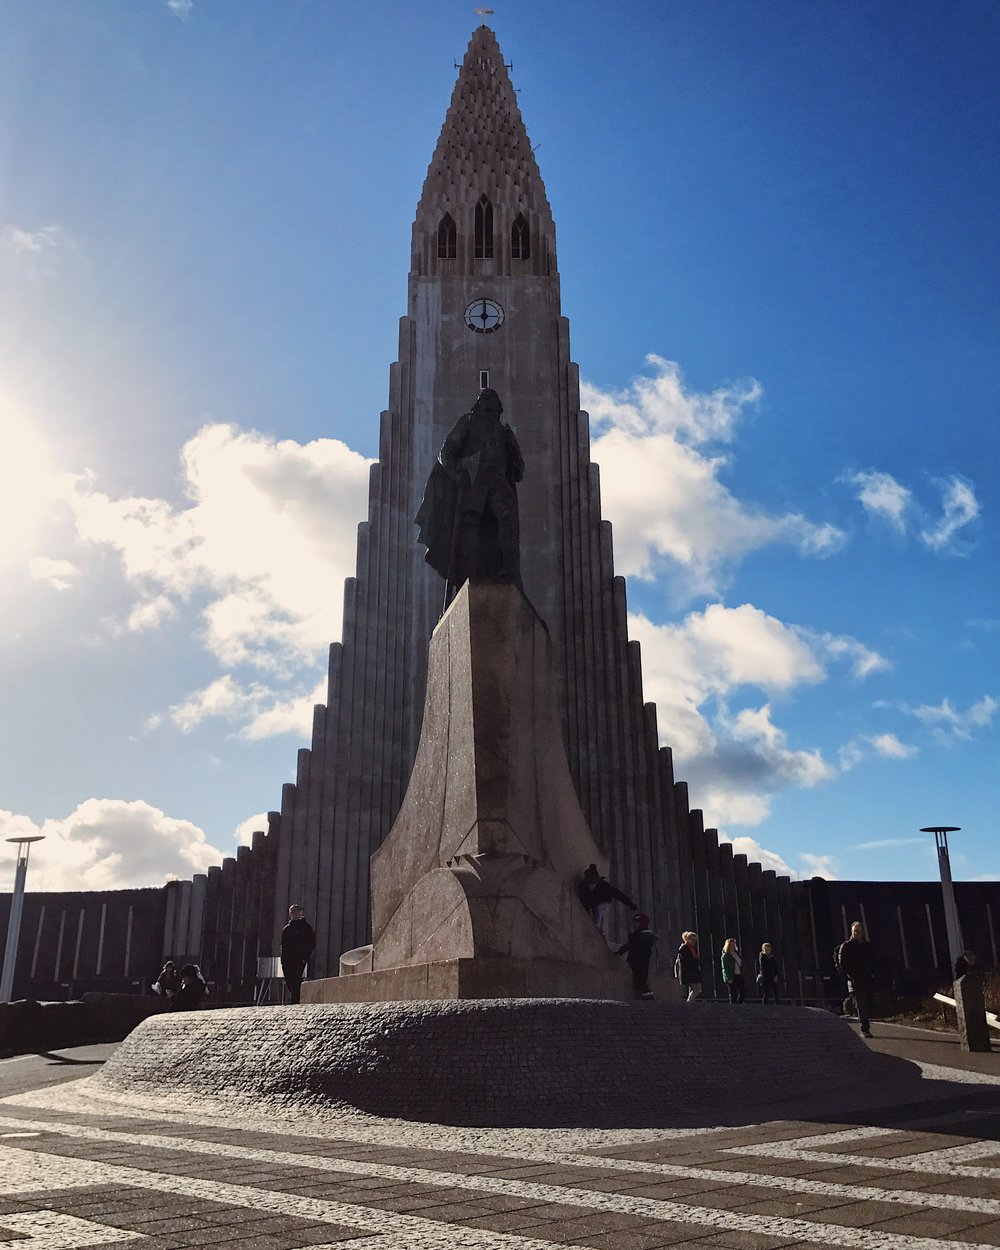 Hallgrímskirkja, the large church in the middle of Reykjavik.